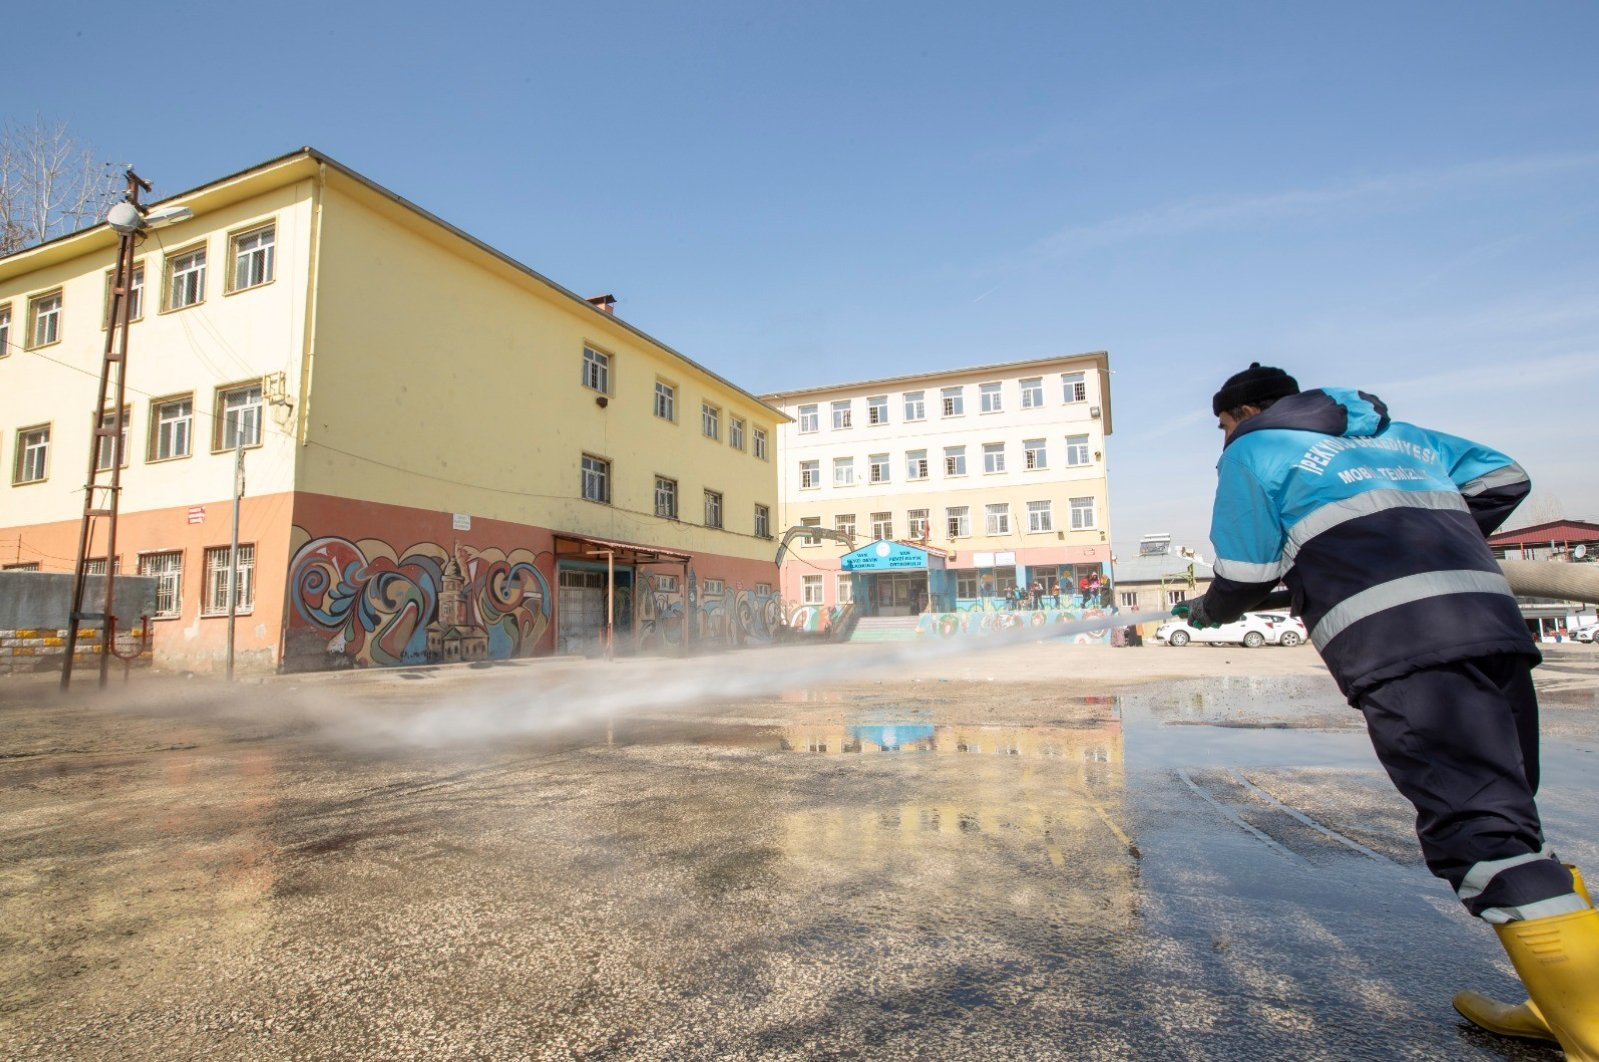 A cleaning worker disinfects school in eastern Van province's Ipekyolu district on Thursday, March 12, 2020 (IHA Photo)